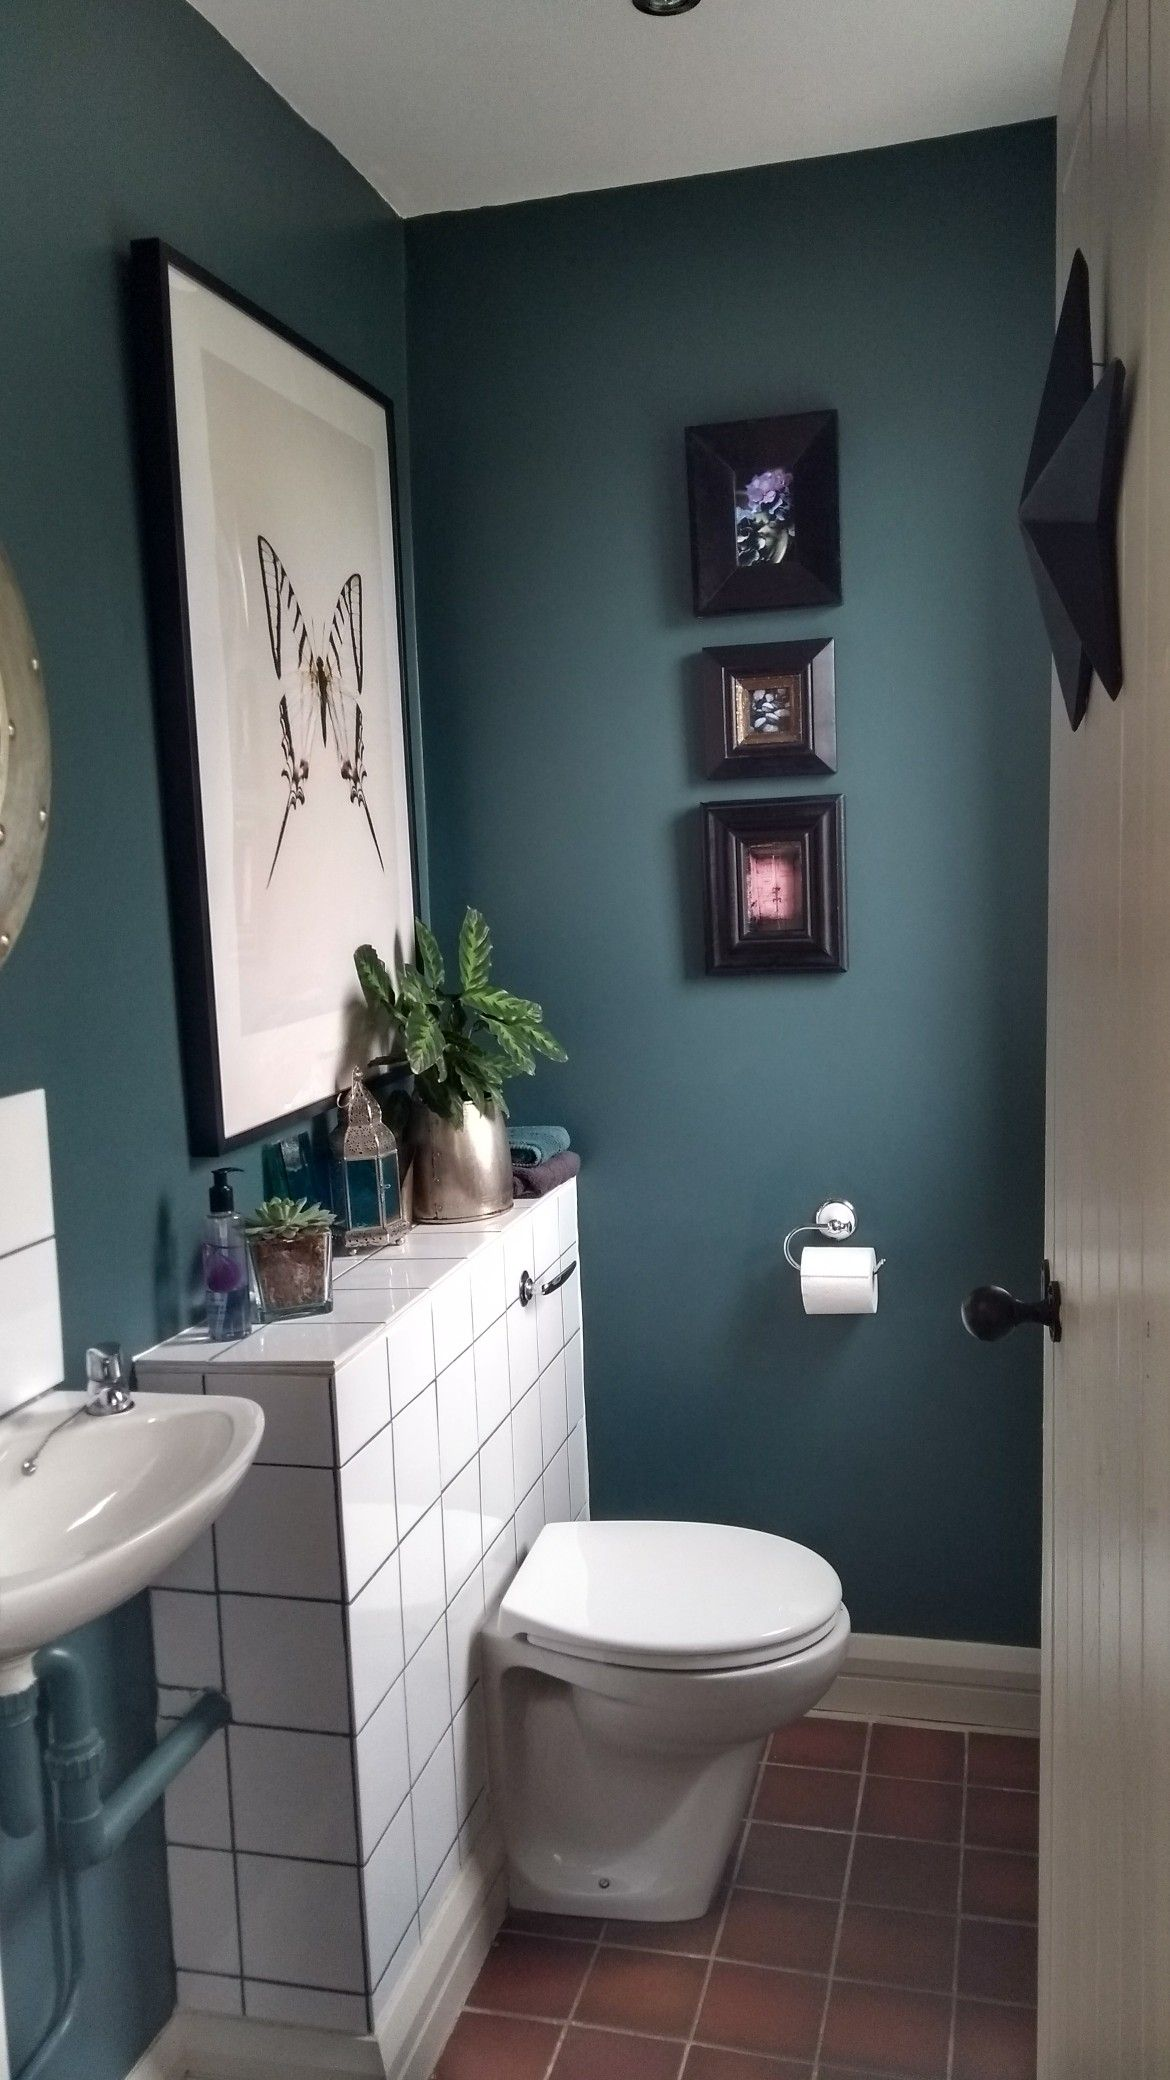 Small Cloakroom Toilet Green